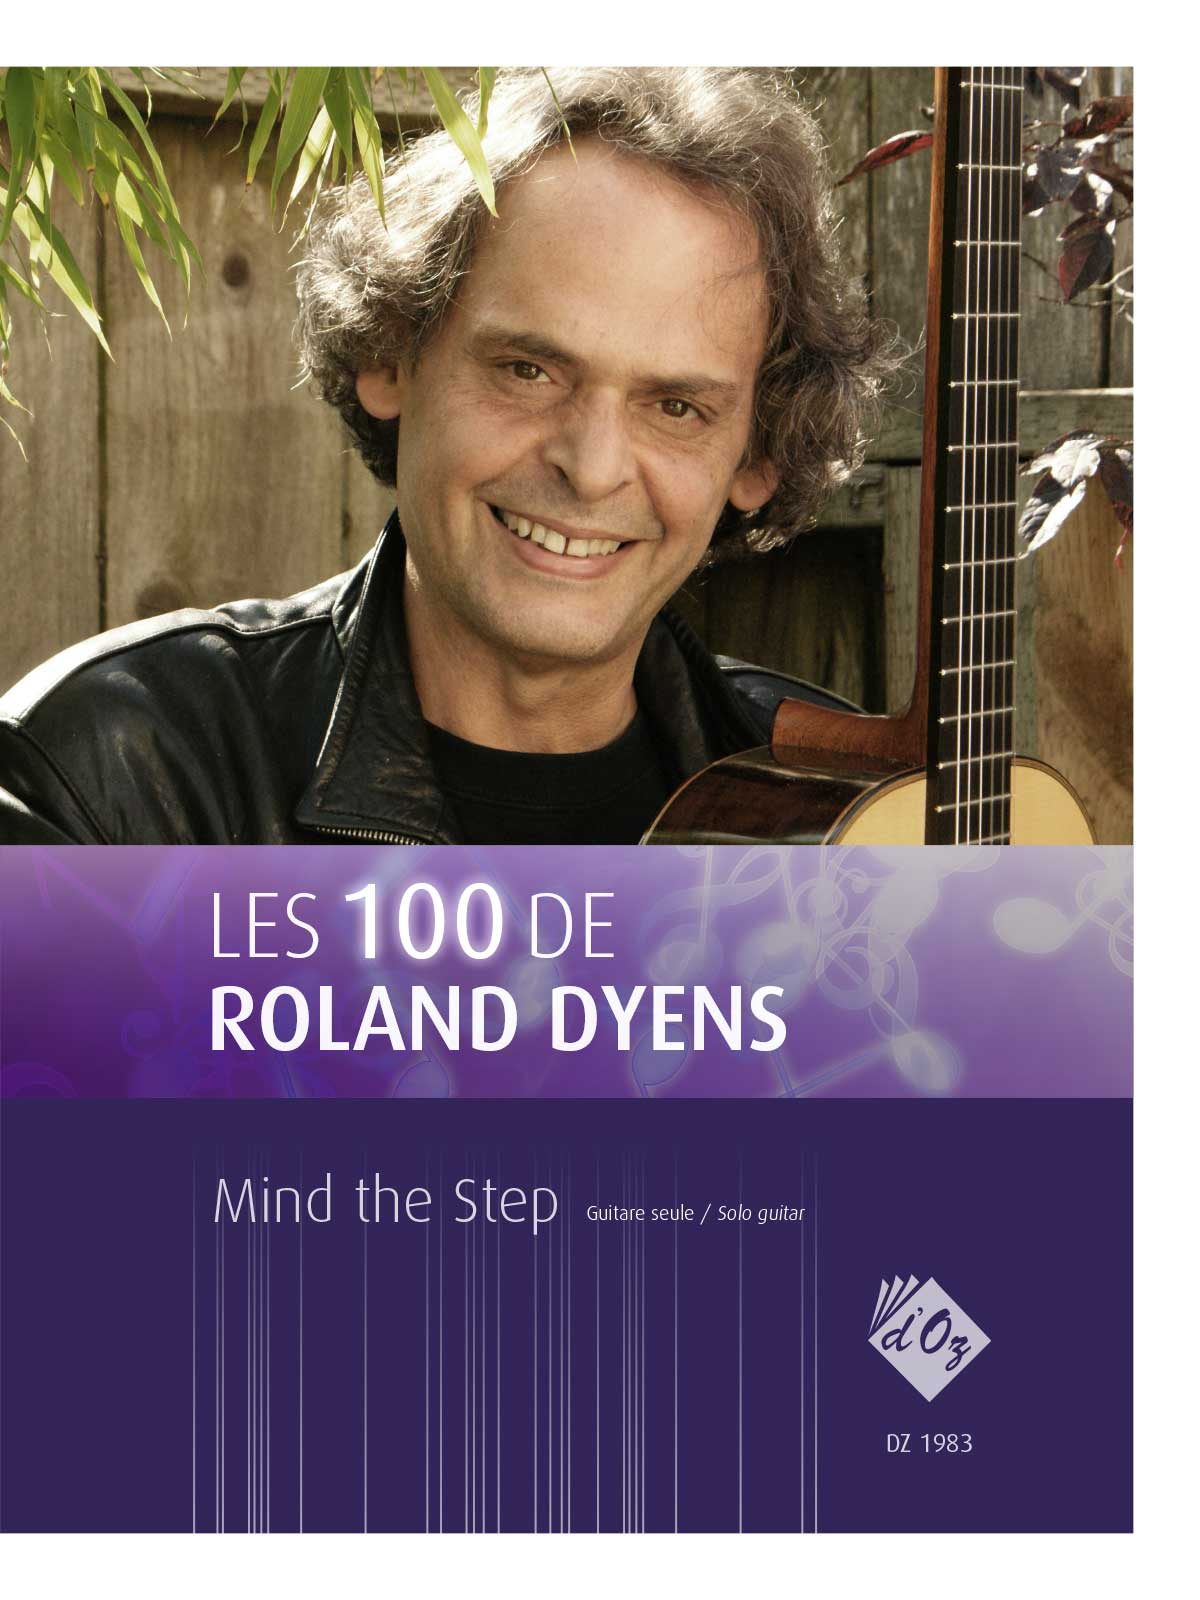 Les 100 de Roland Dyens - Mind the Step